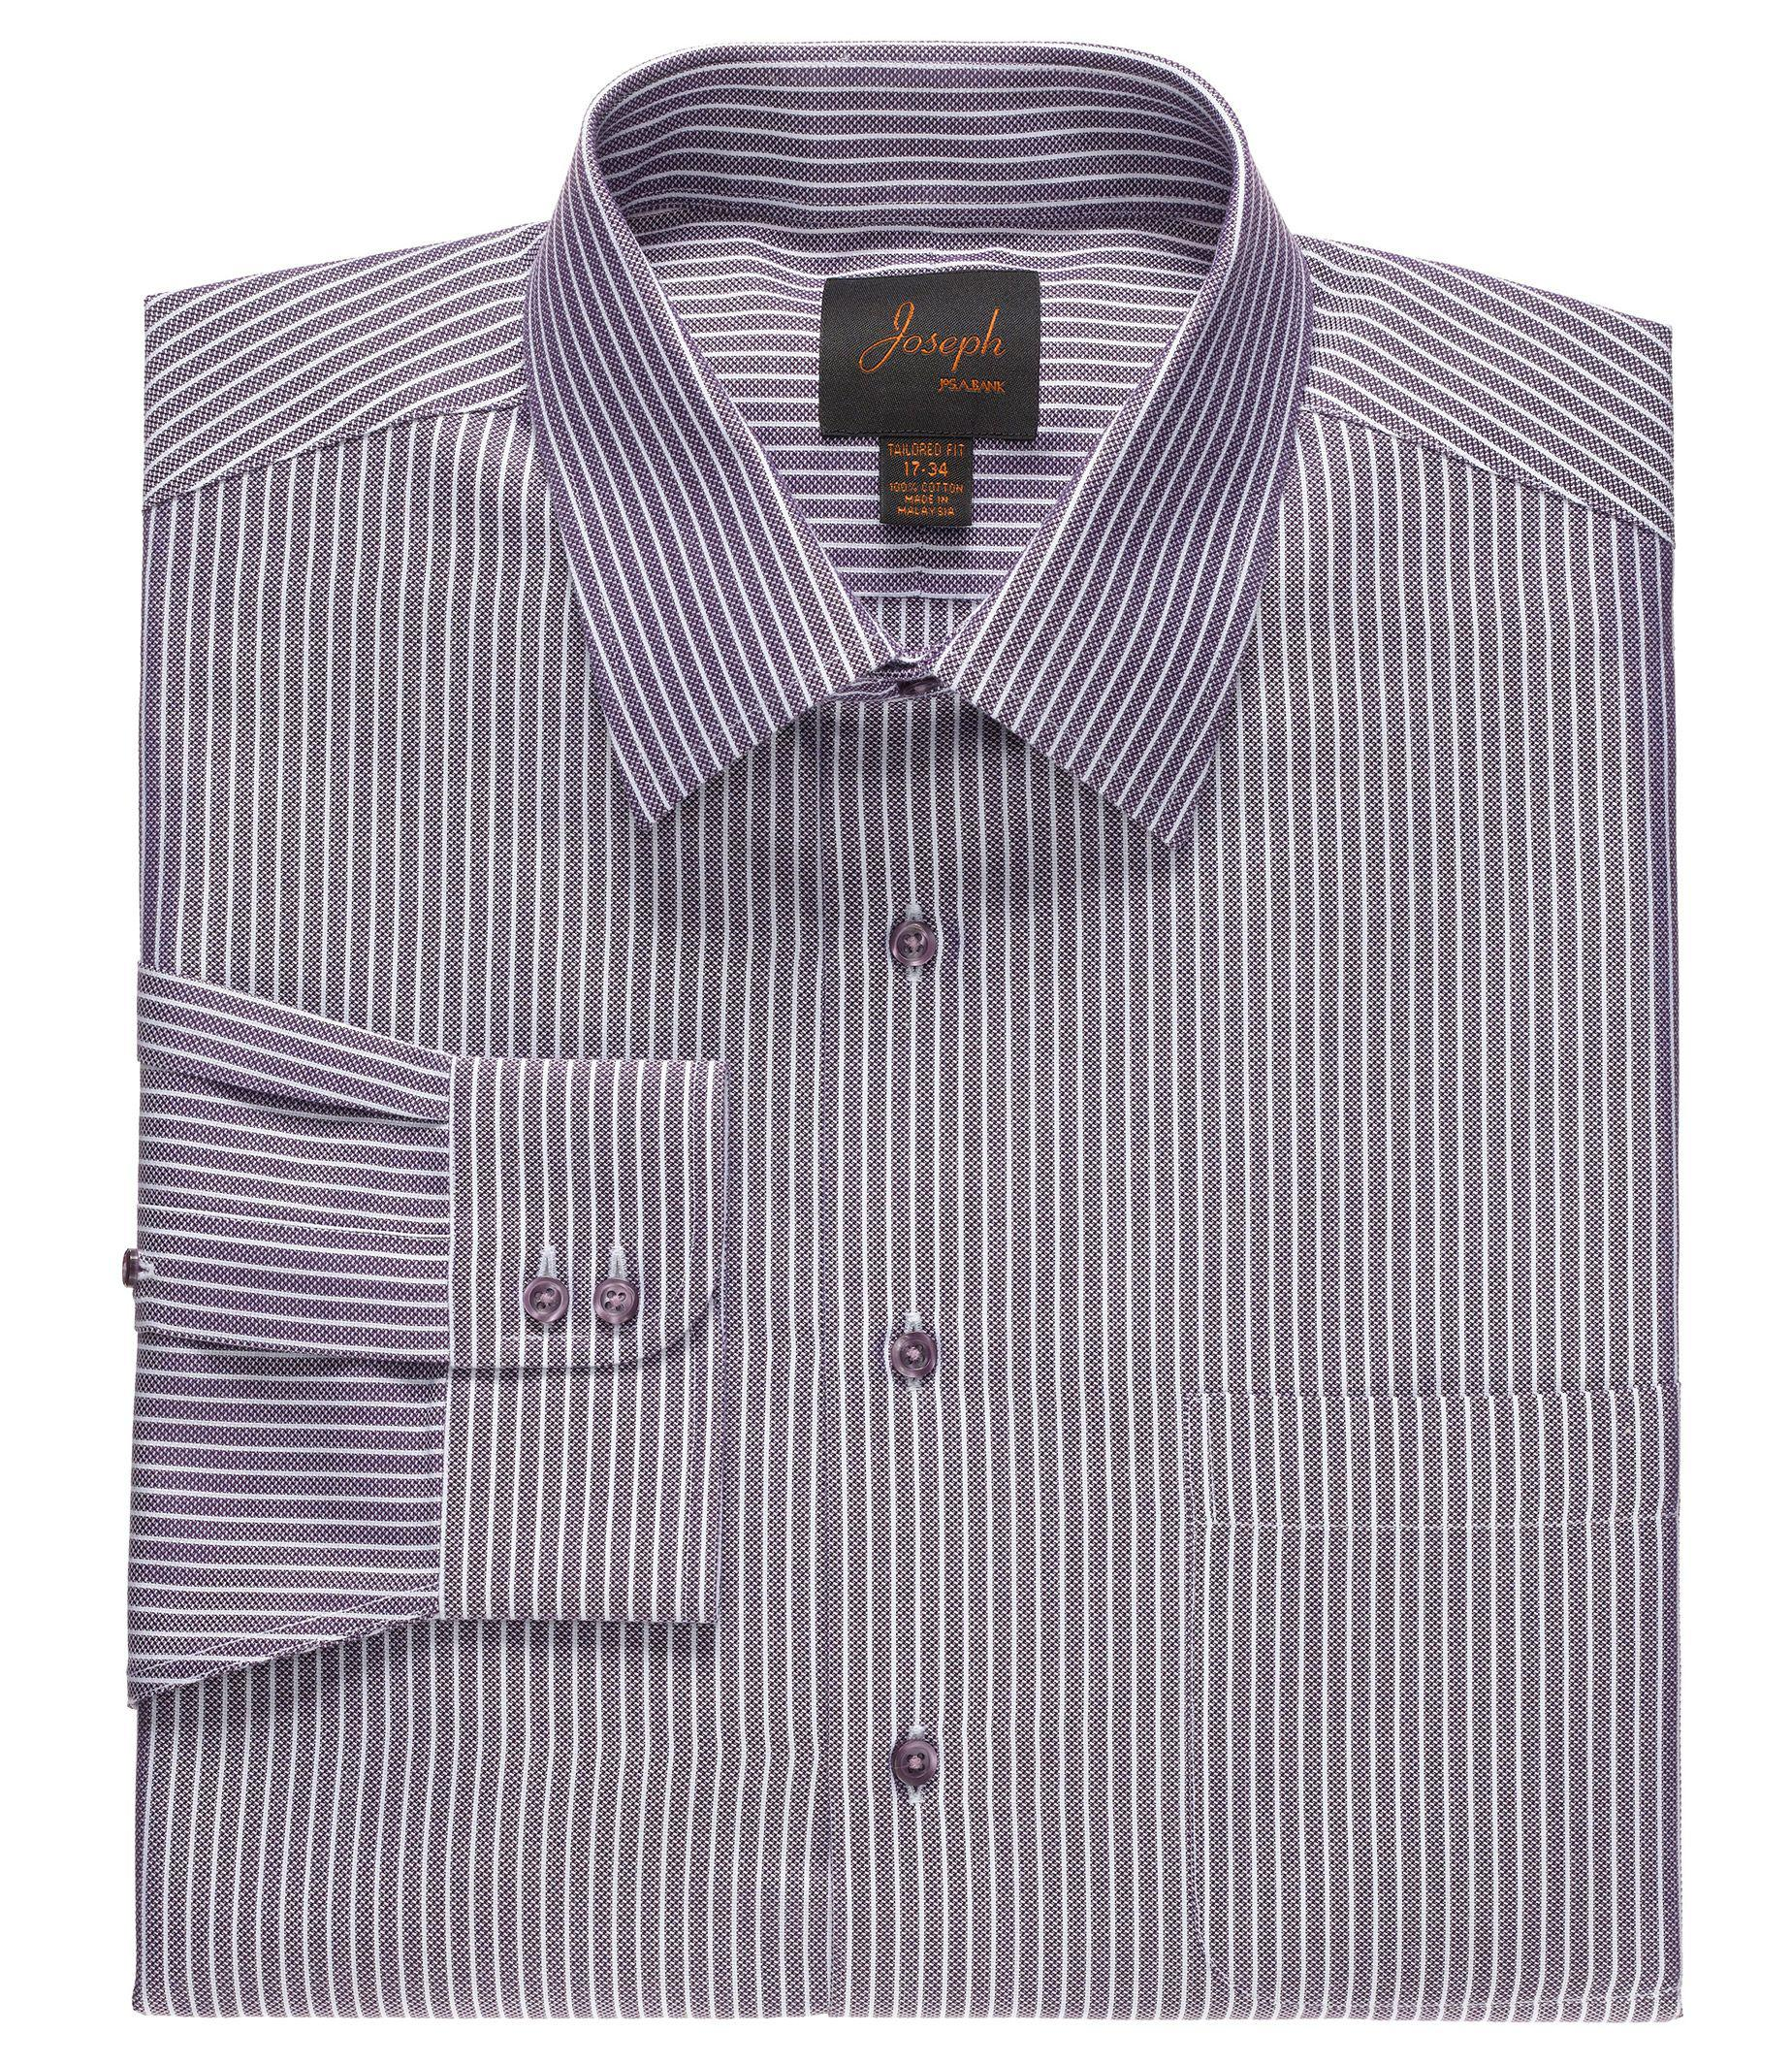 Jos a bank joseph spread collar cotton wide stripe dress for Joseph banks dress shirts